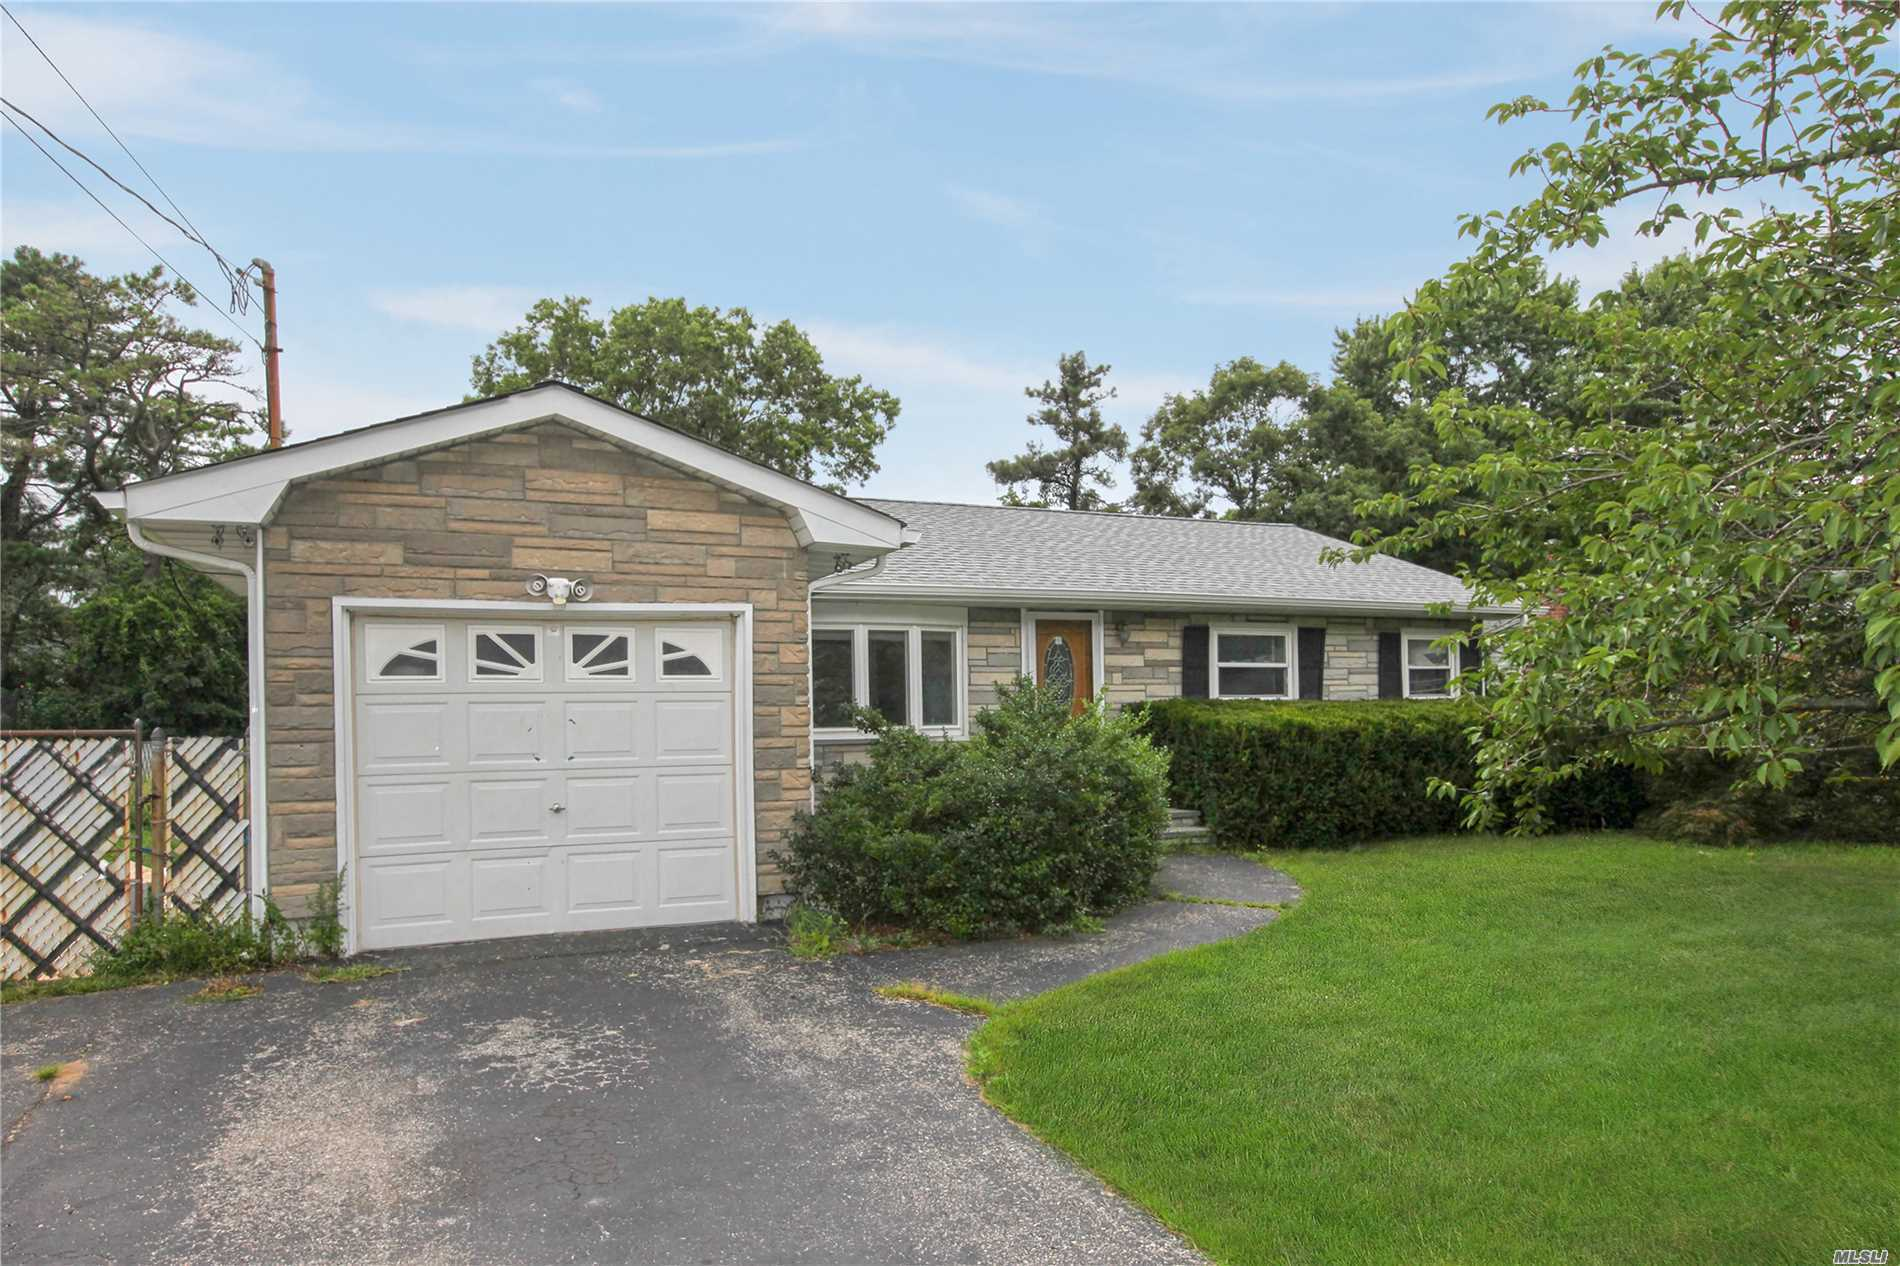 Garage For Sale Long Island 3 Bed 1 Bath Home In Hauppauge For 359 000